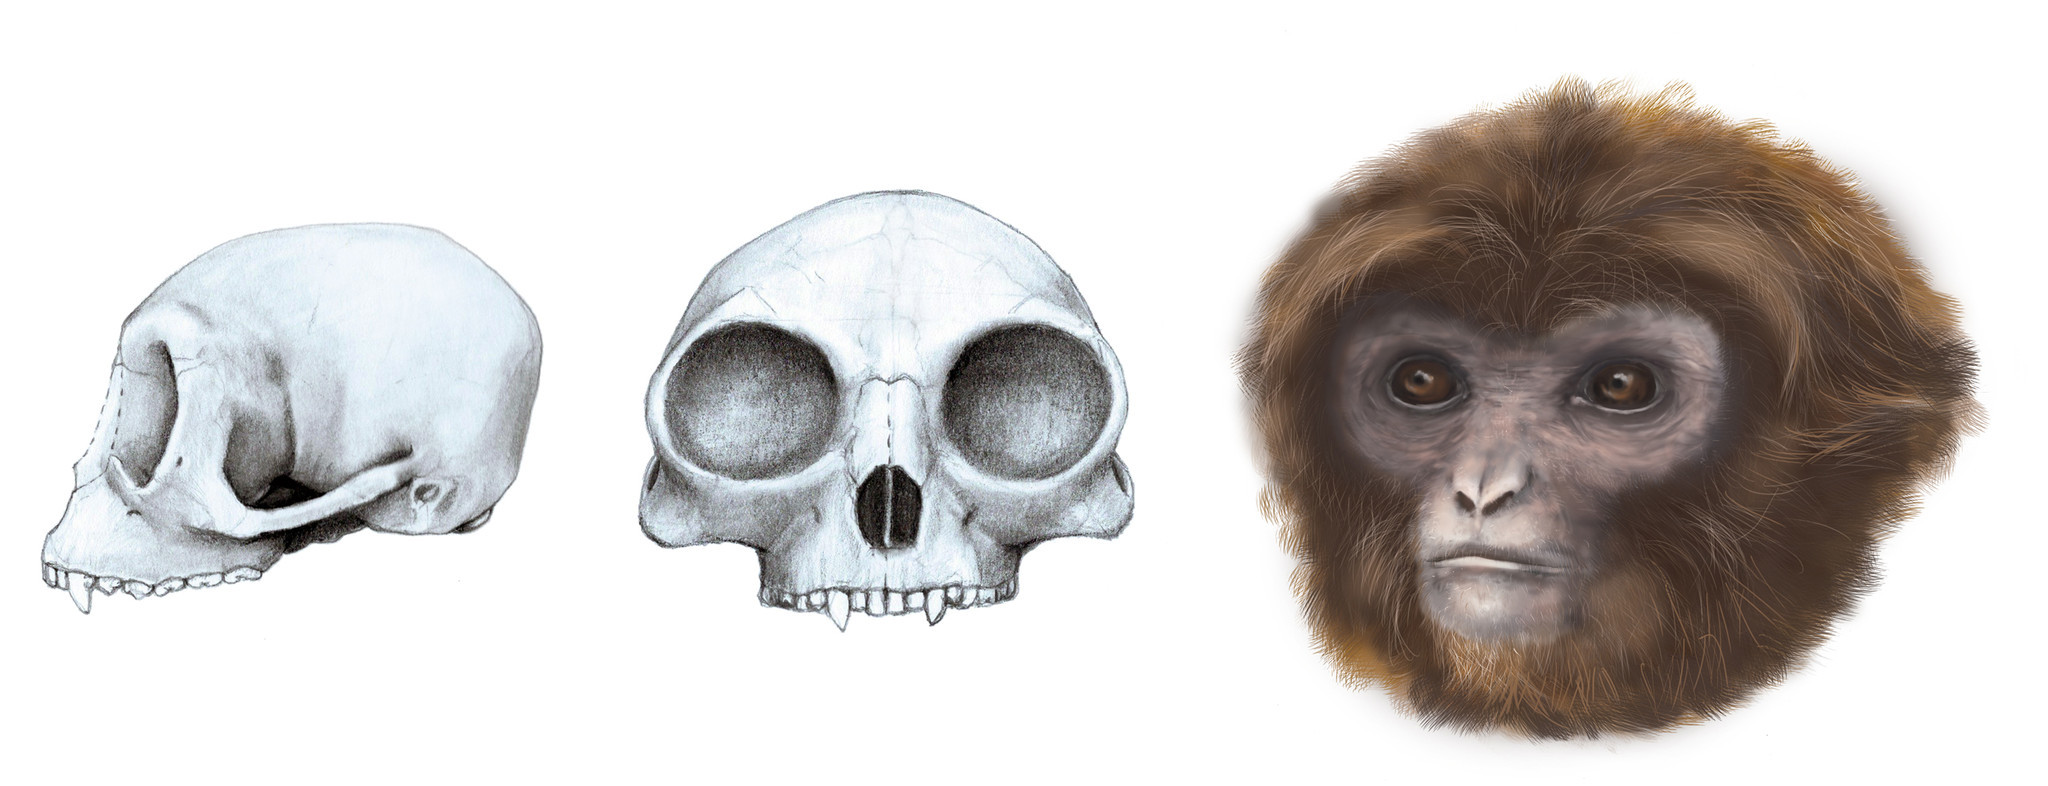 Ancestor of all apes might not be what scientists expected, new ...